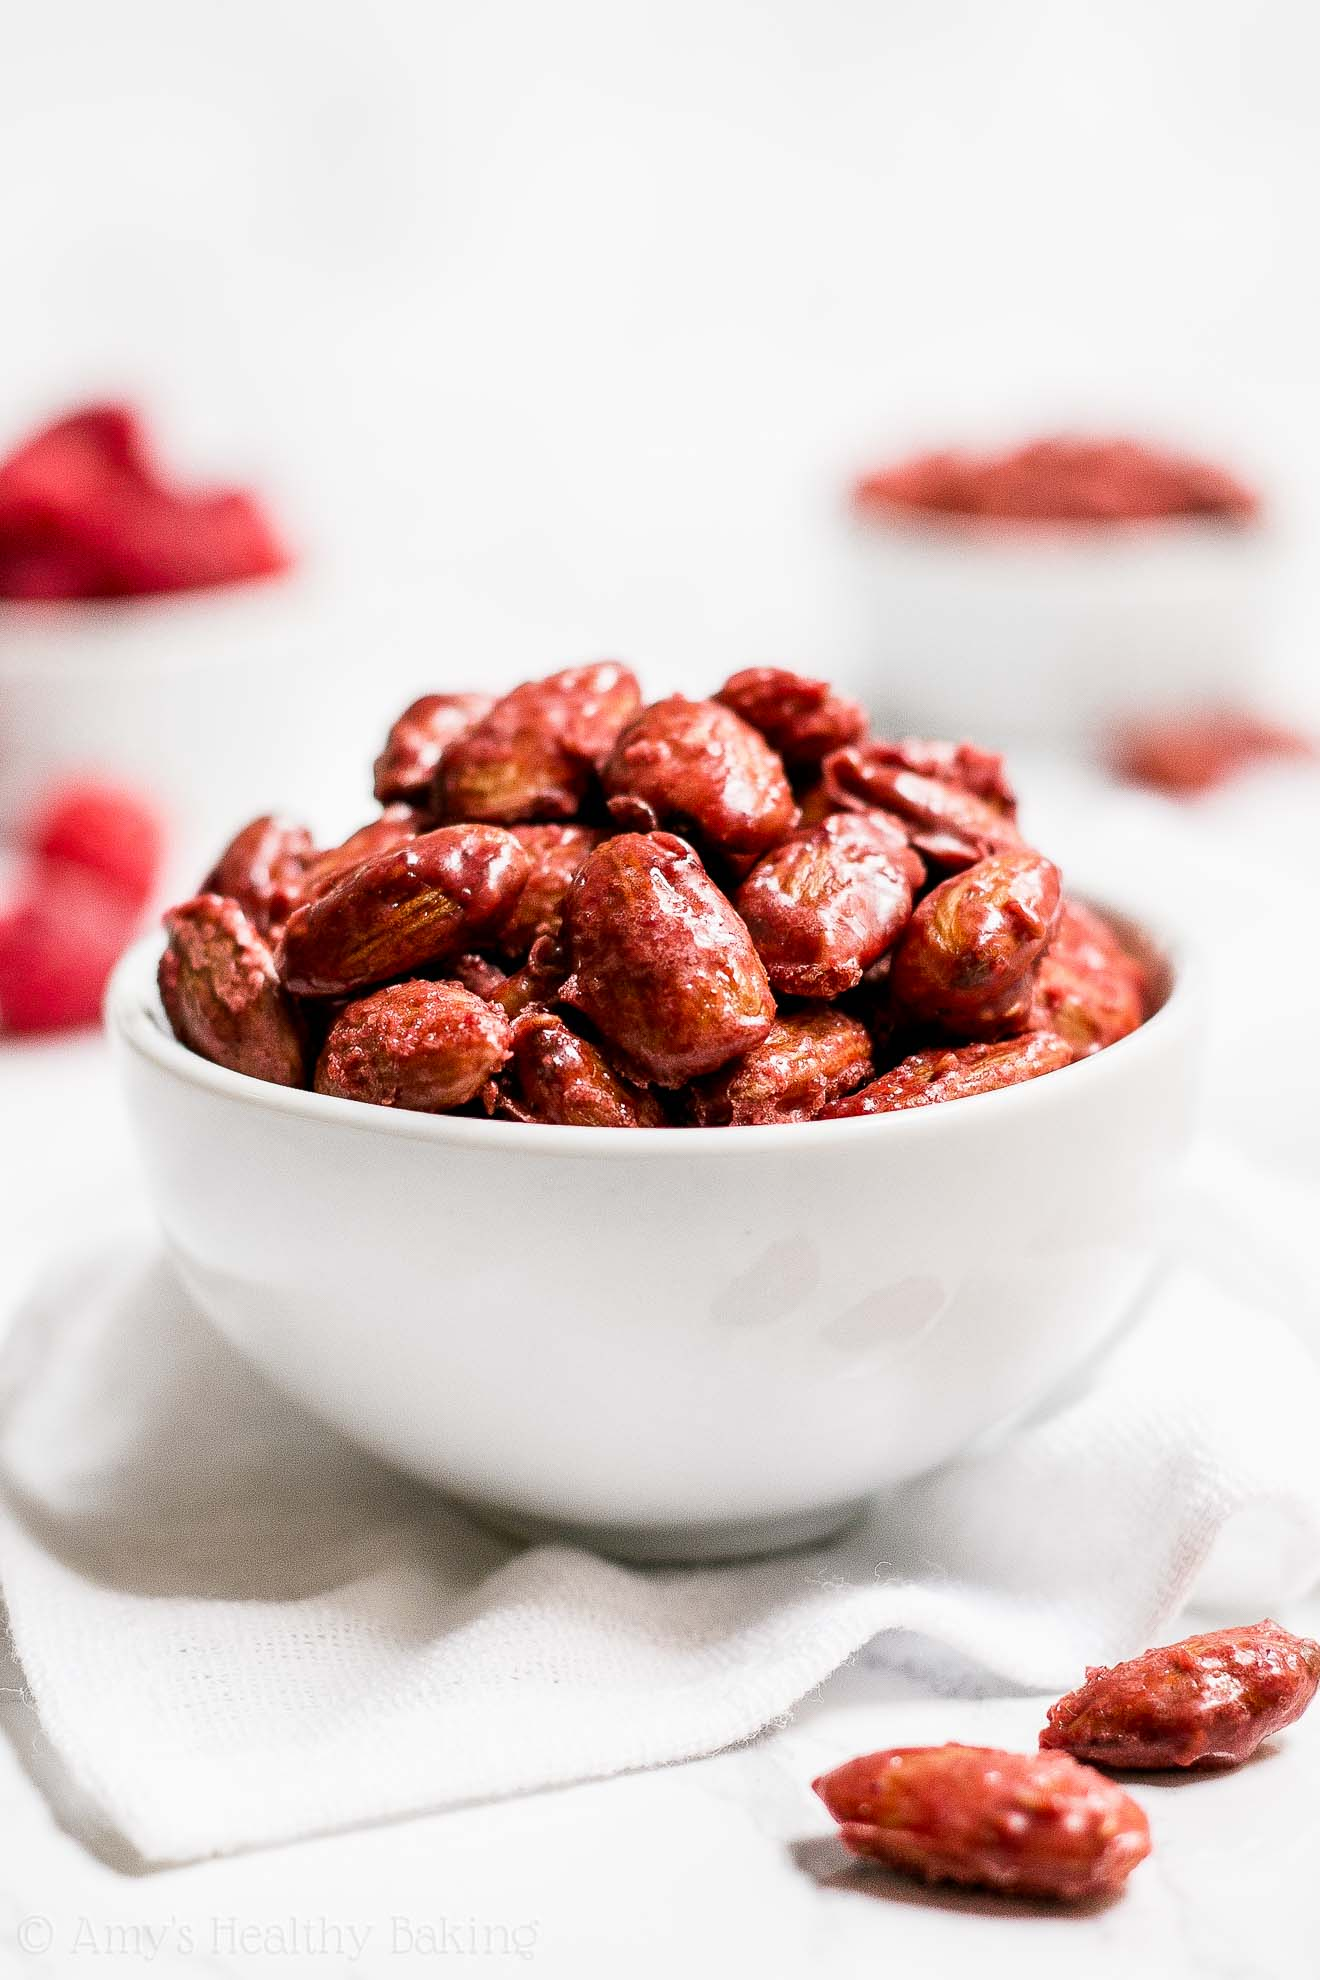 Low Carb Sugar Free Healthy Raspberry Candied Almonds